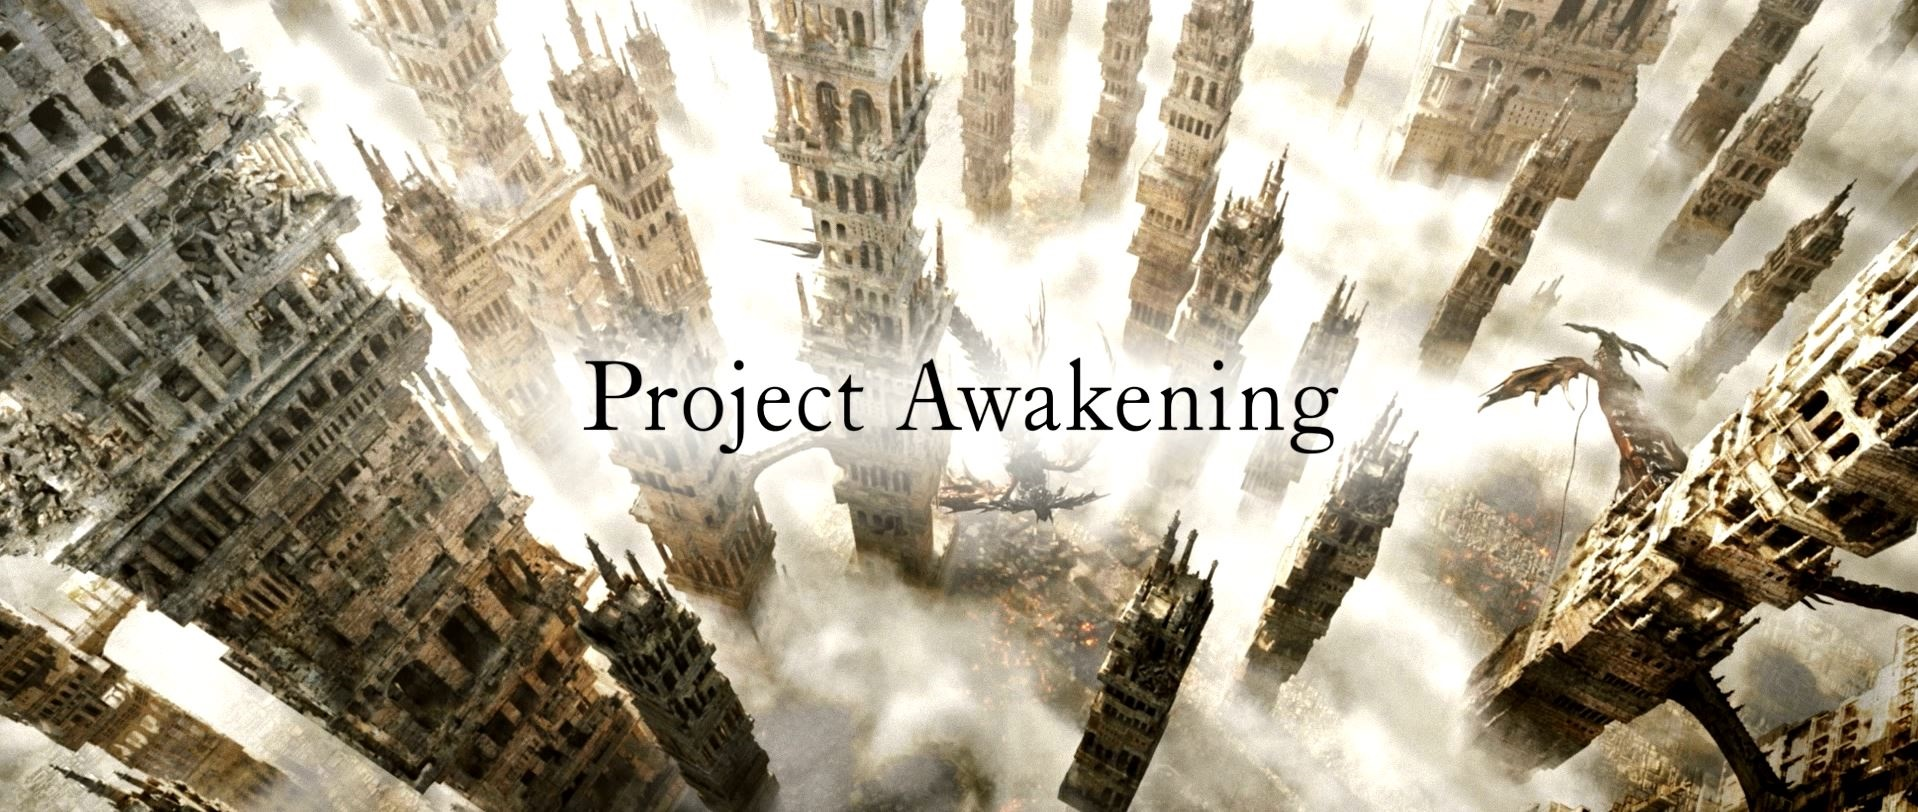 Project-Awakening-Announce_08-21-16_002